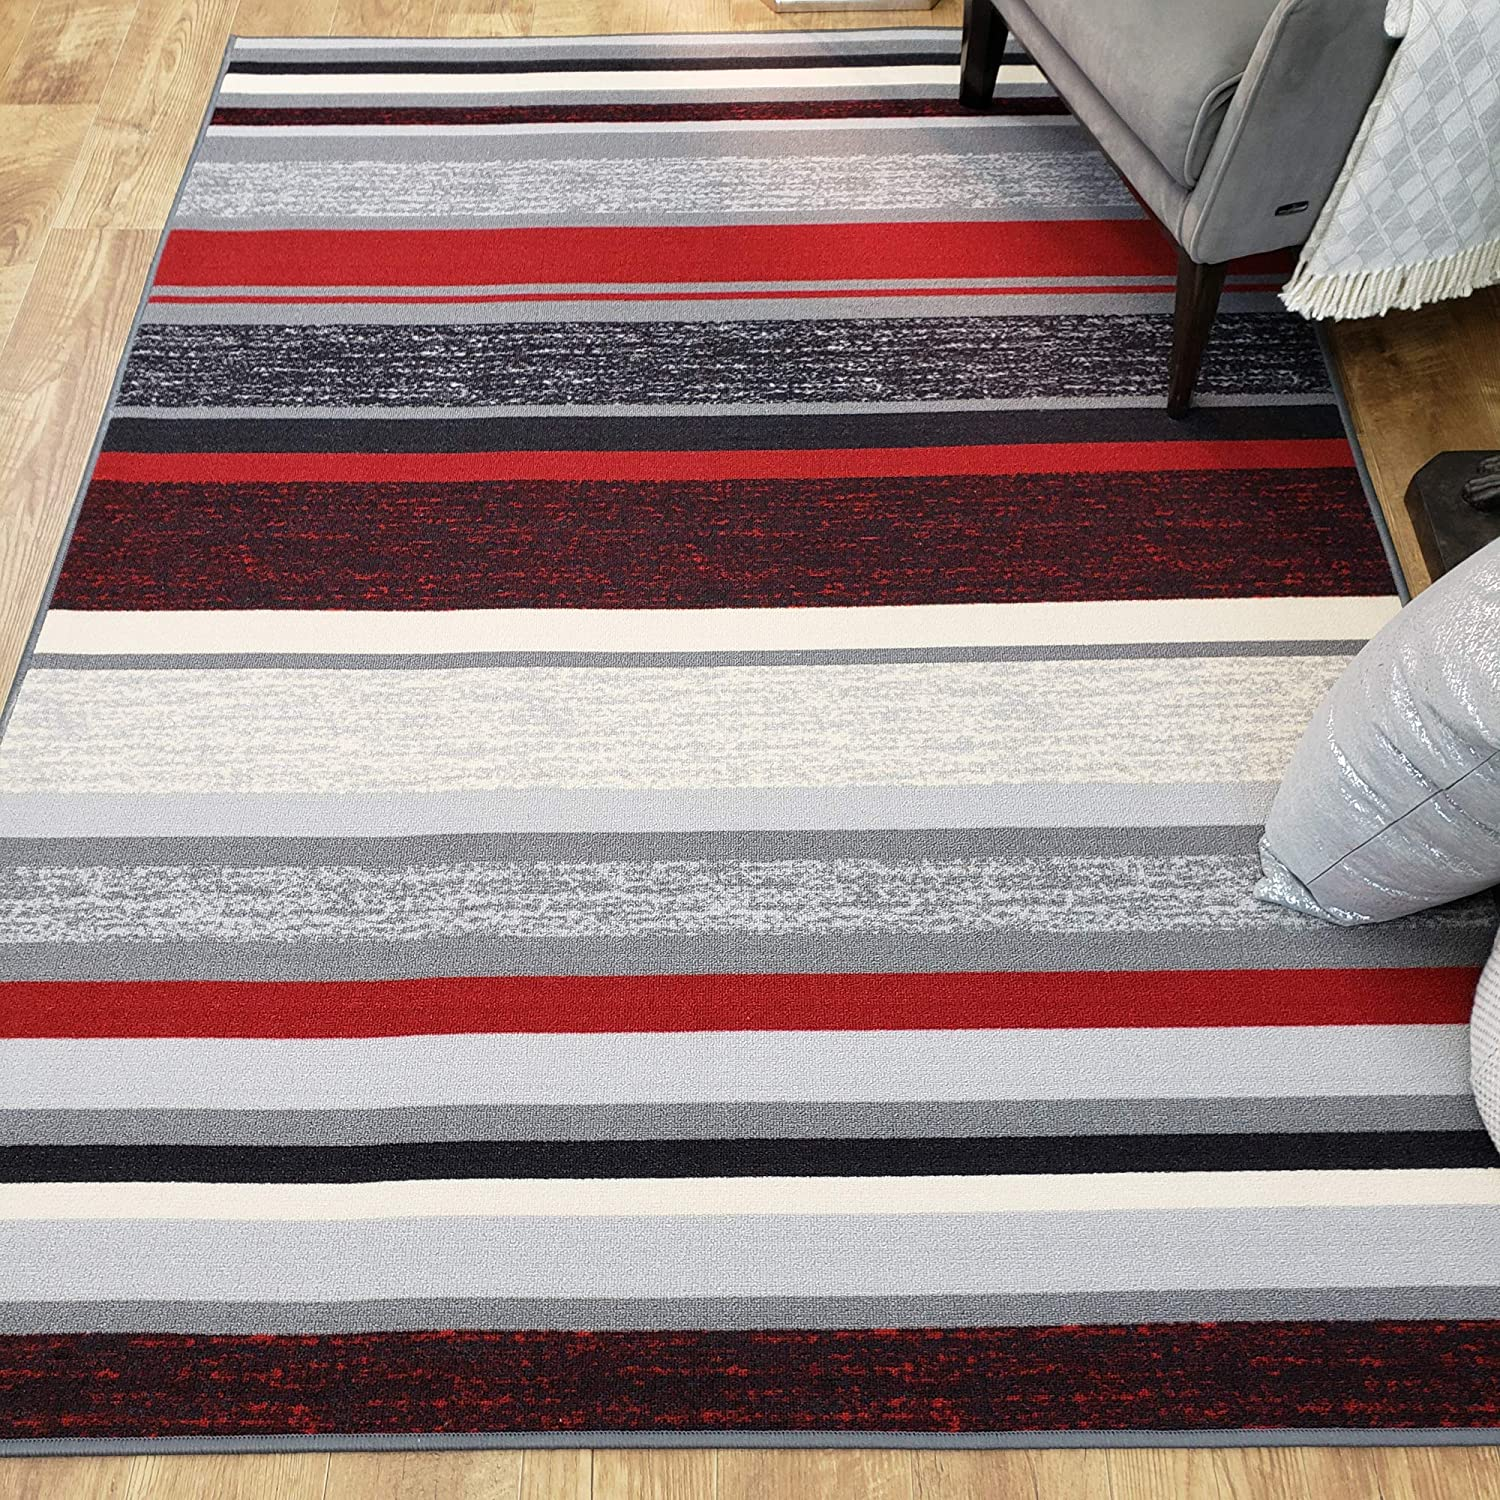 Area Rug 3x5 Red Black Stripes Kitchen Rugs and mats | Rubber Backed Non Skid Living Room Bathroom Nursery Home Decor Under Door Entryway Floor Non Slip Washable | Made in Europe